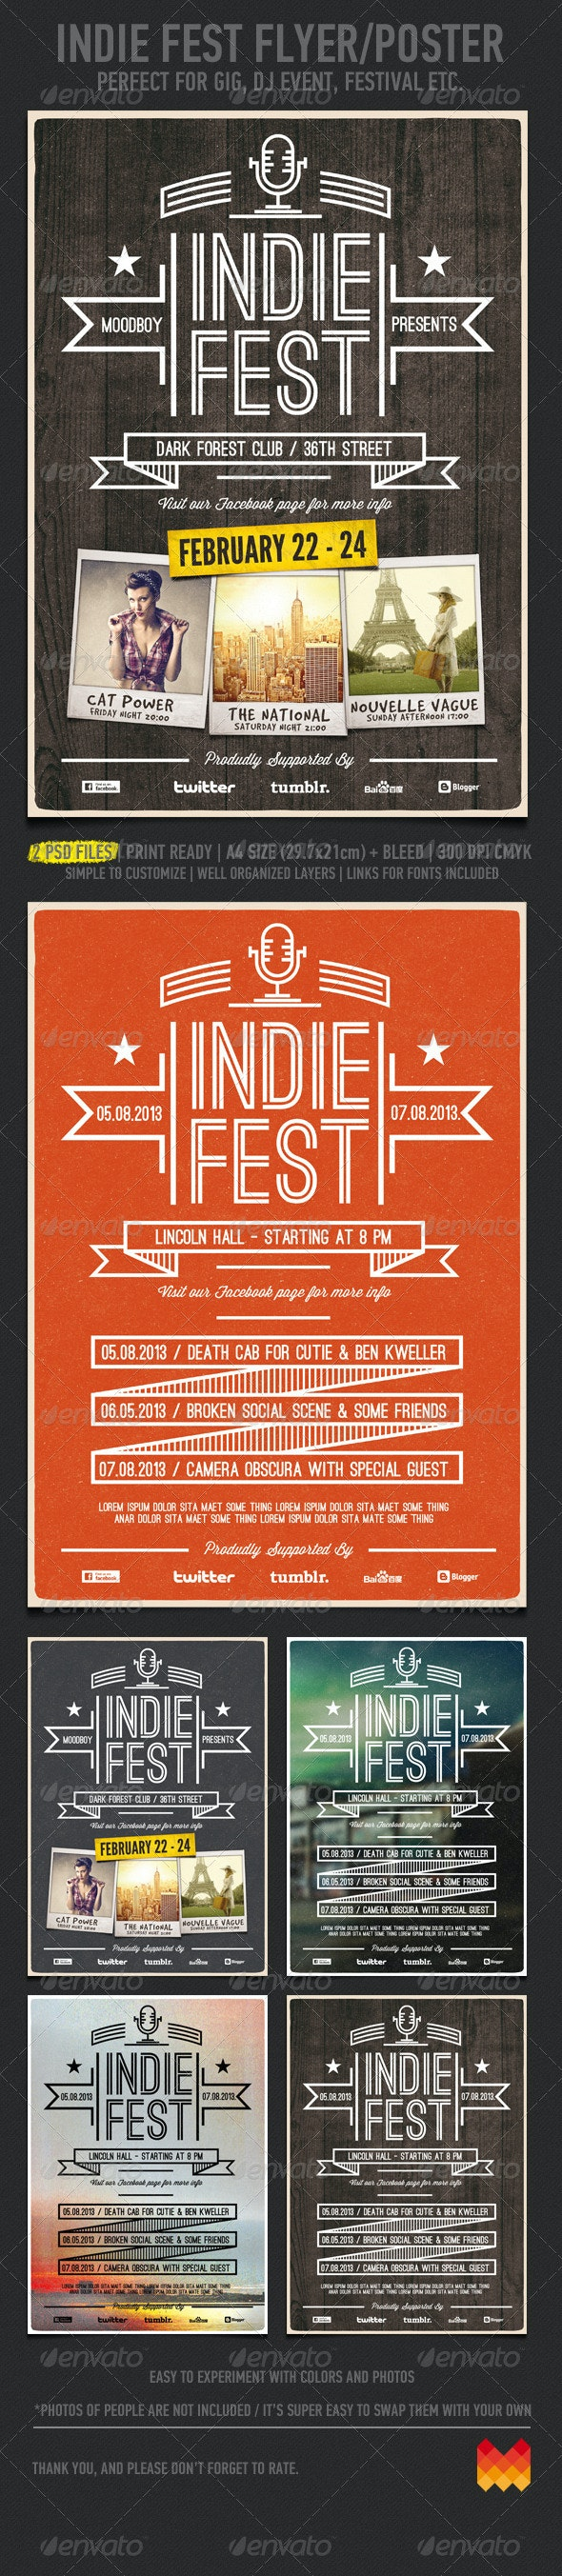 Indie Fest V.03 Flyer / Poster - Clubs & Parties Events